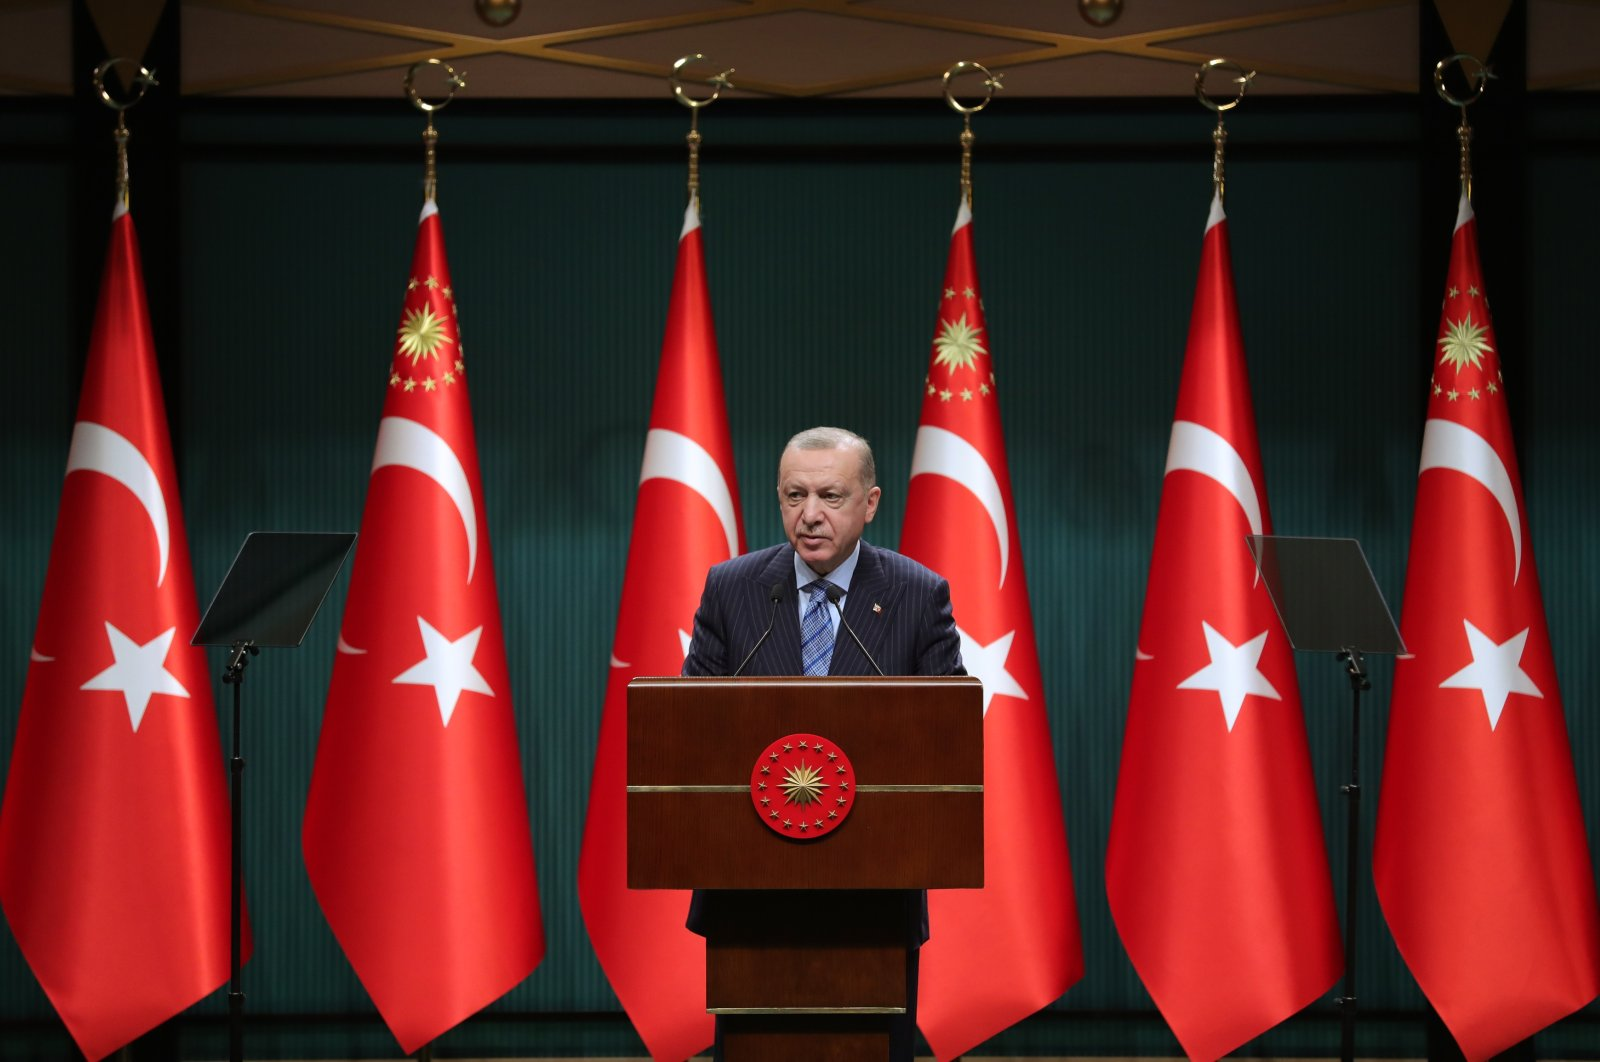 President Recep Tayyip Erdoğan speaks during a press conference at the Presidential Complex in Ankara, Turkey, on May 17, 2021. (AA Photo)